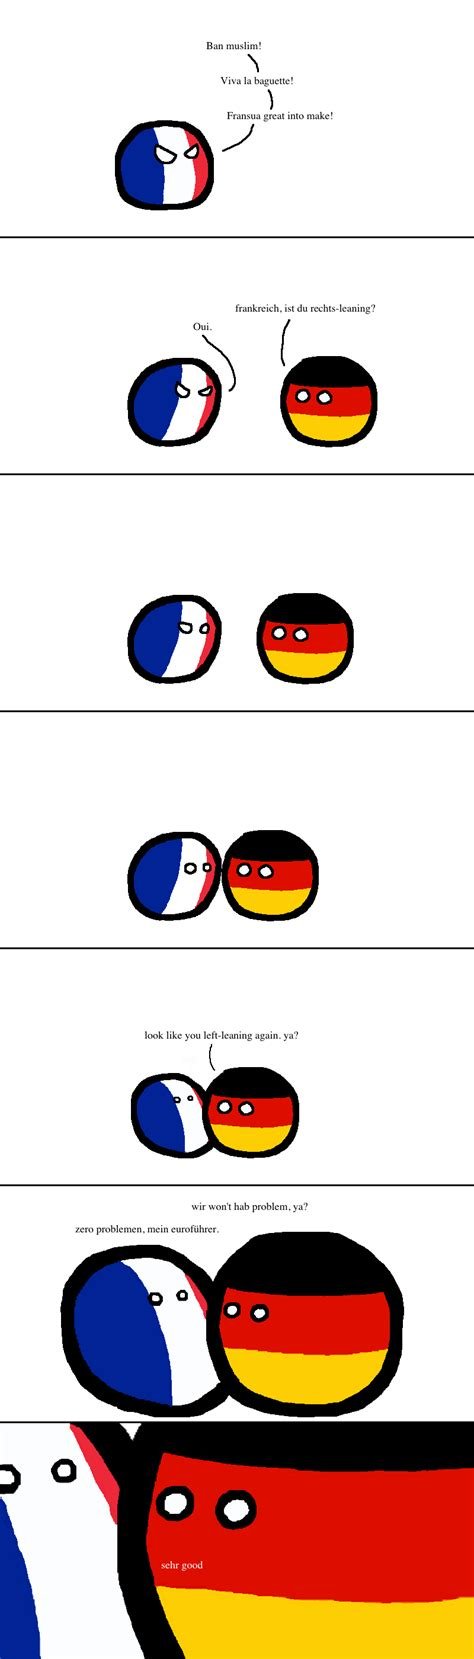 Happiest States Right Leaning Polandball